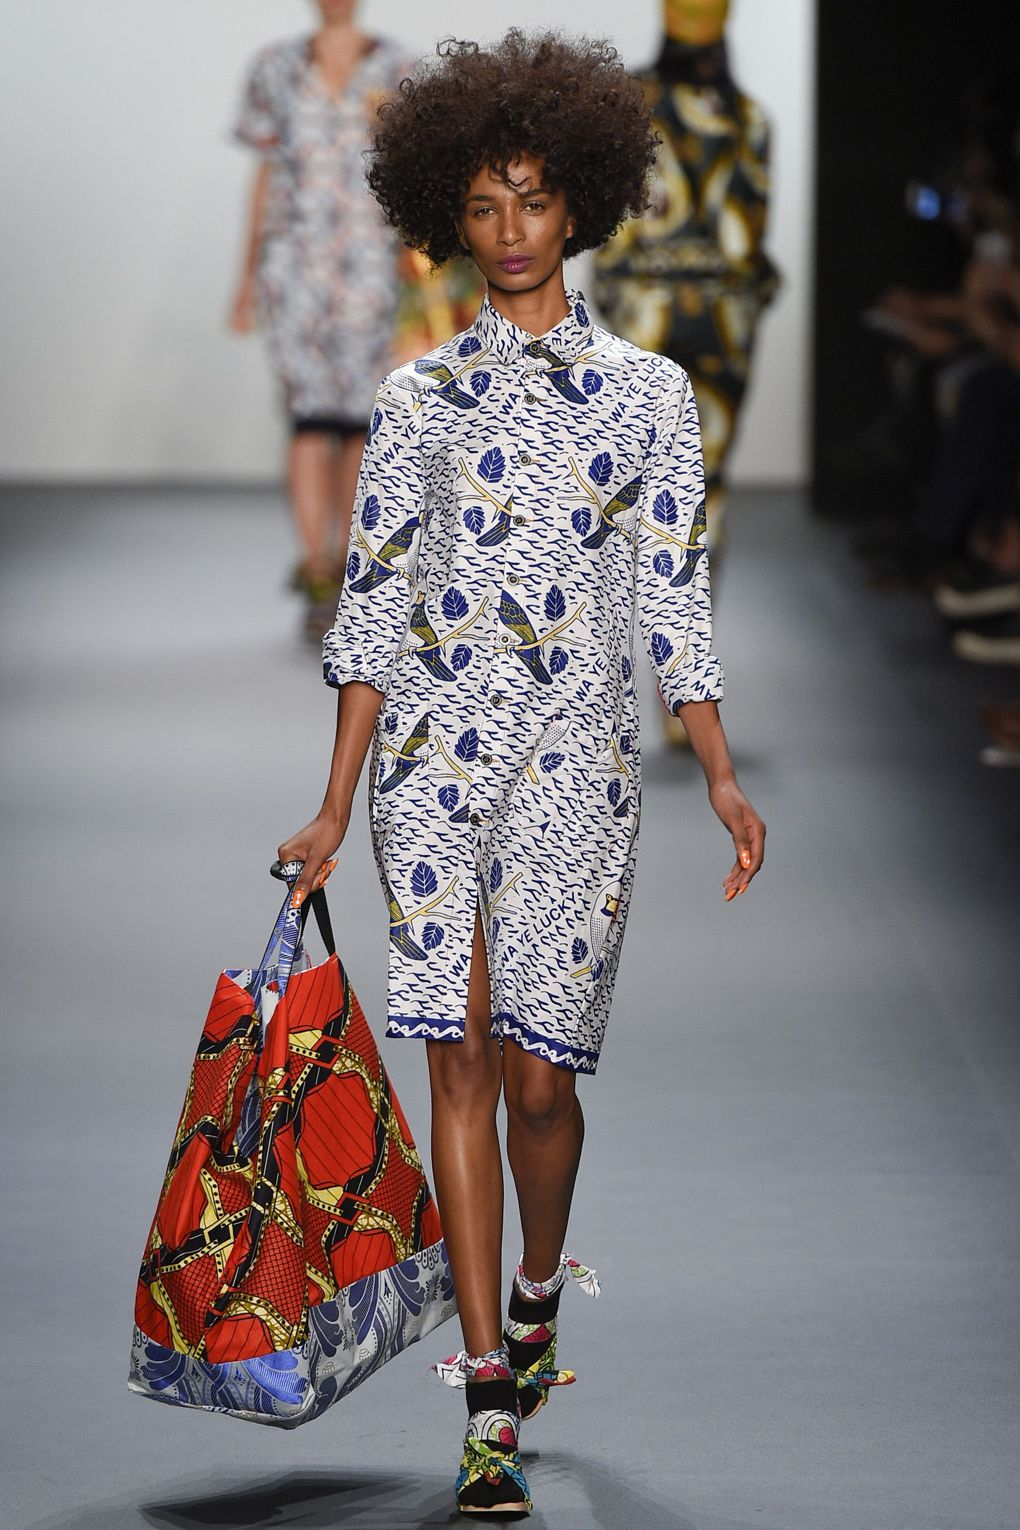 fashion-week-xuly-be%cc%88t-xuly-be%cc%88t-sprigsummer-2016-ready-to-wear-collection-12